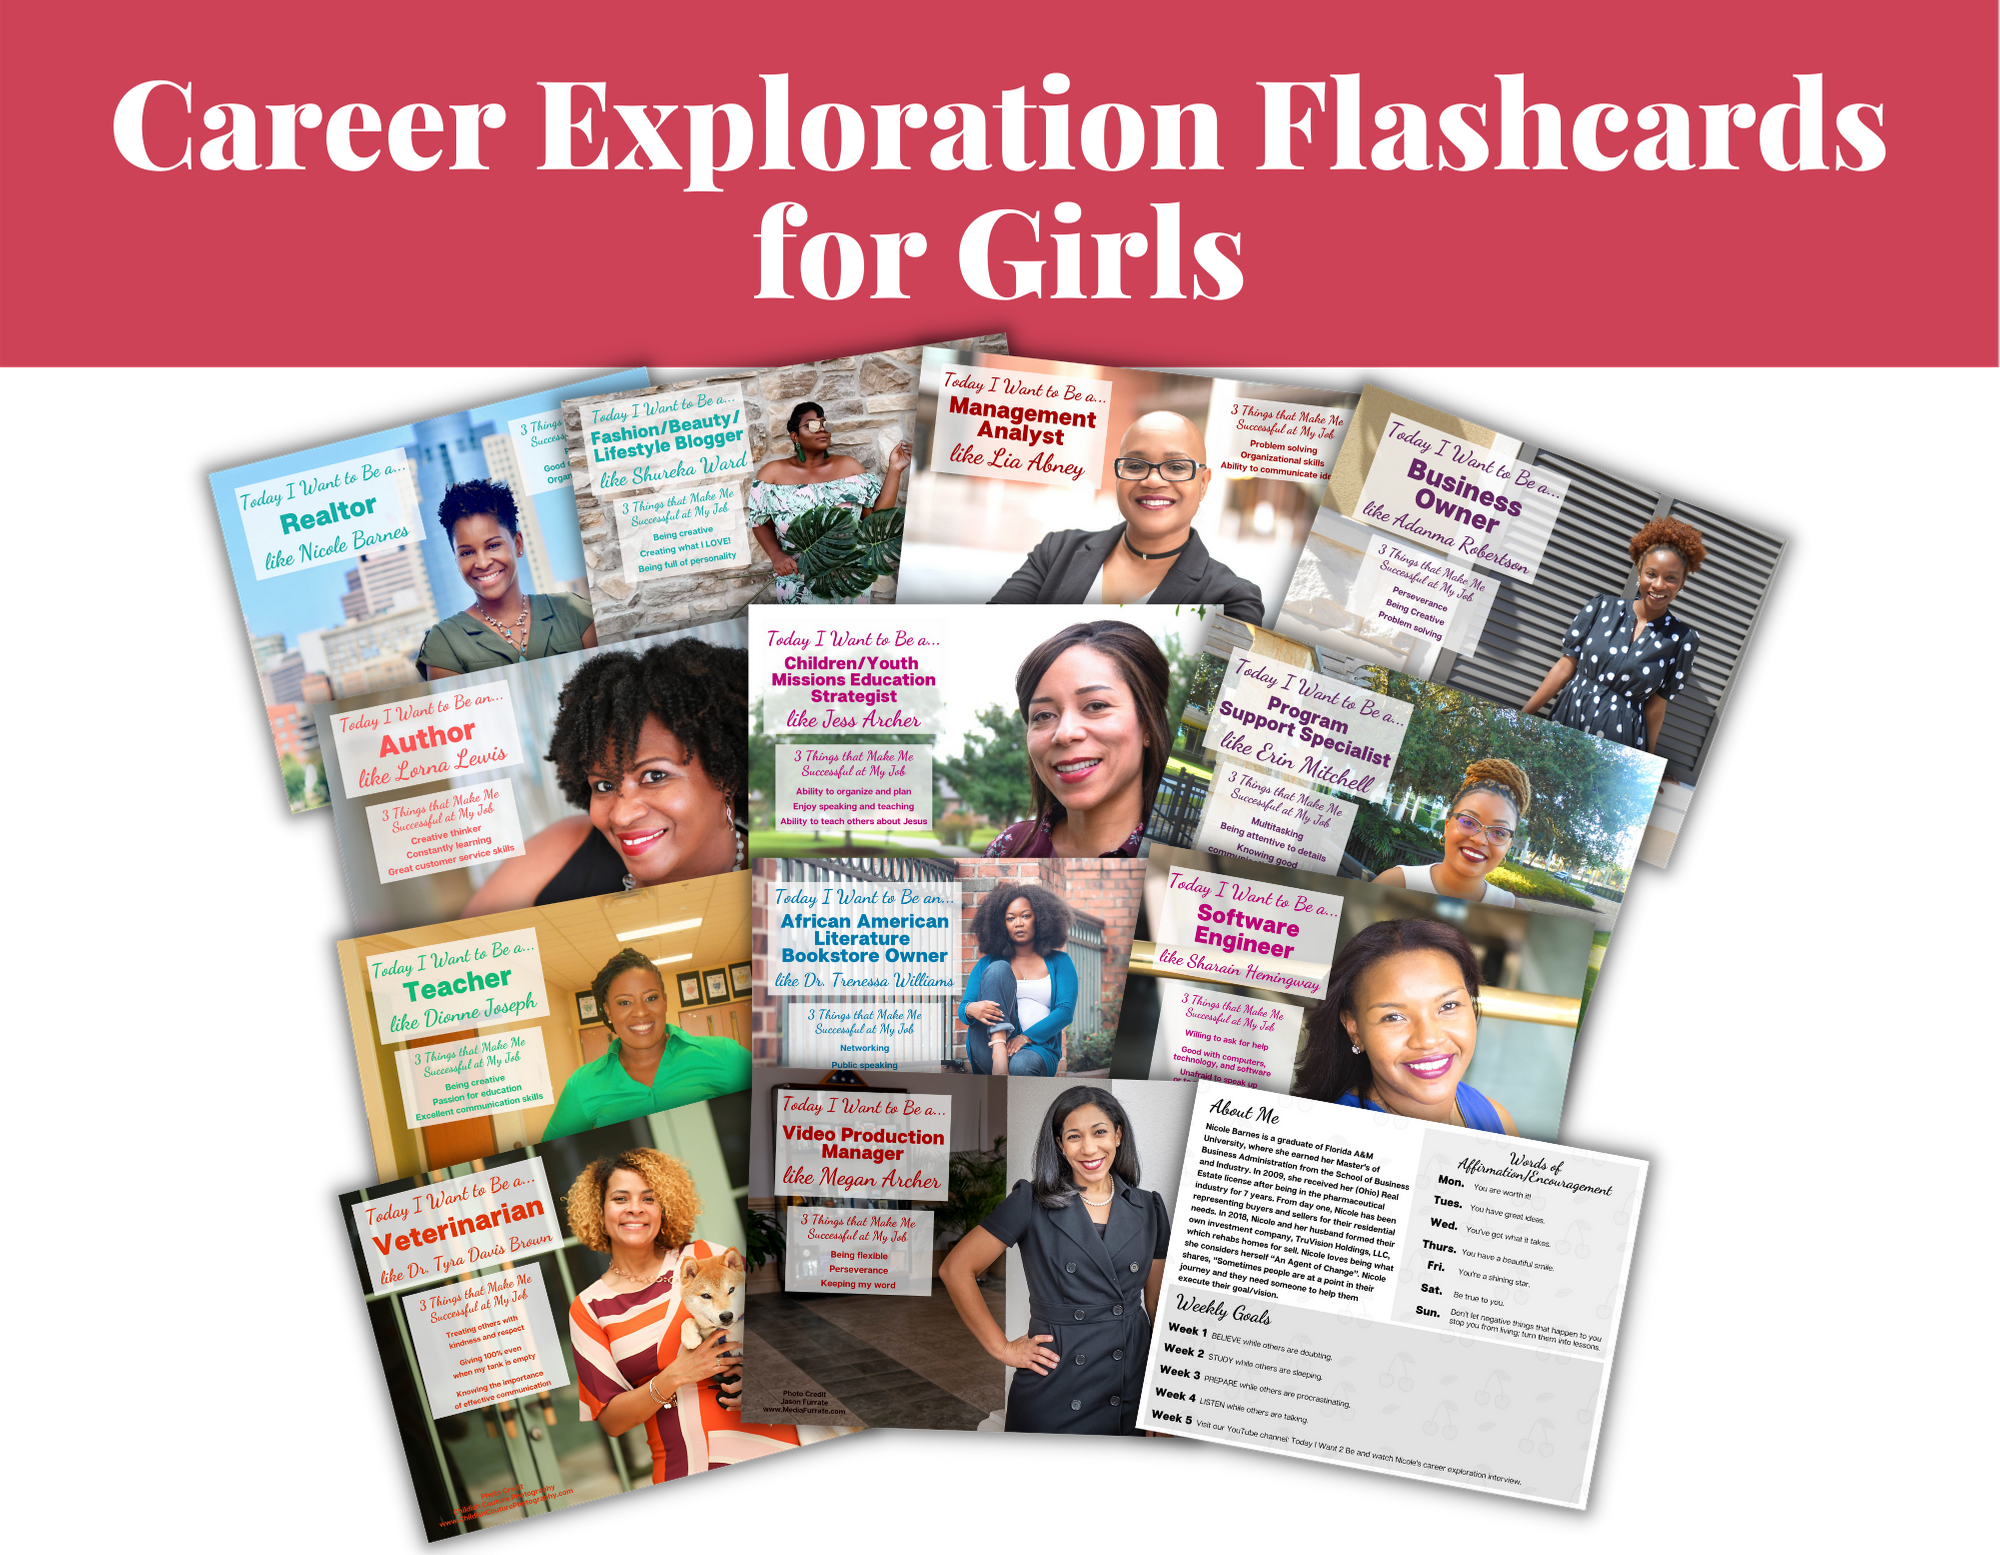 12 career exploration flash cards and resources of black african American women with their job titles